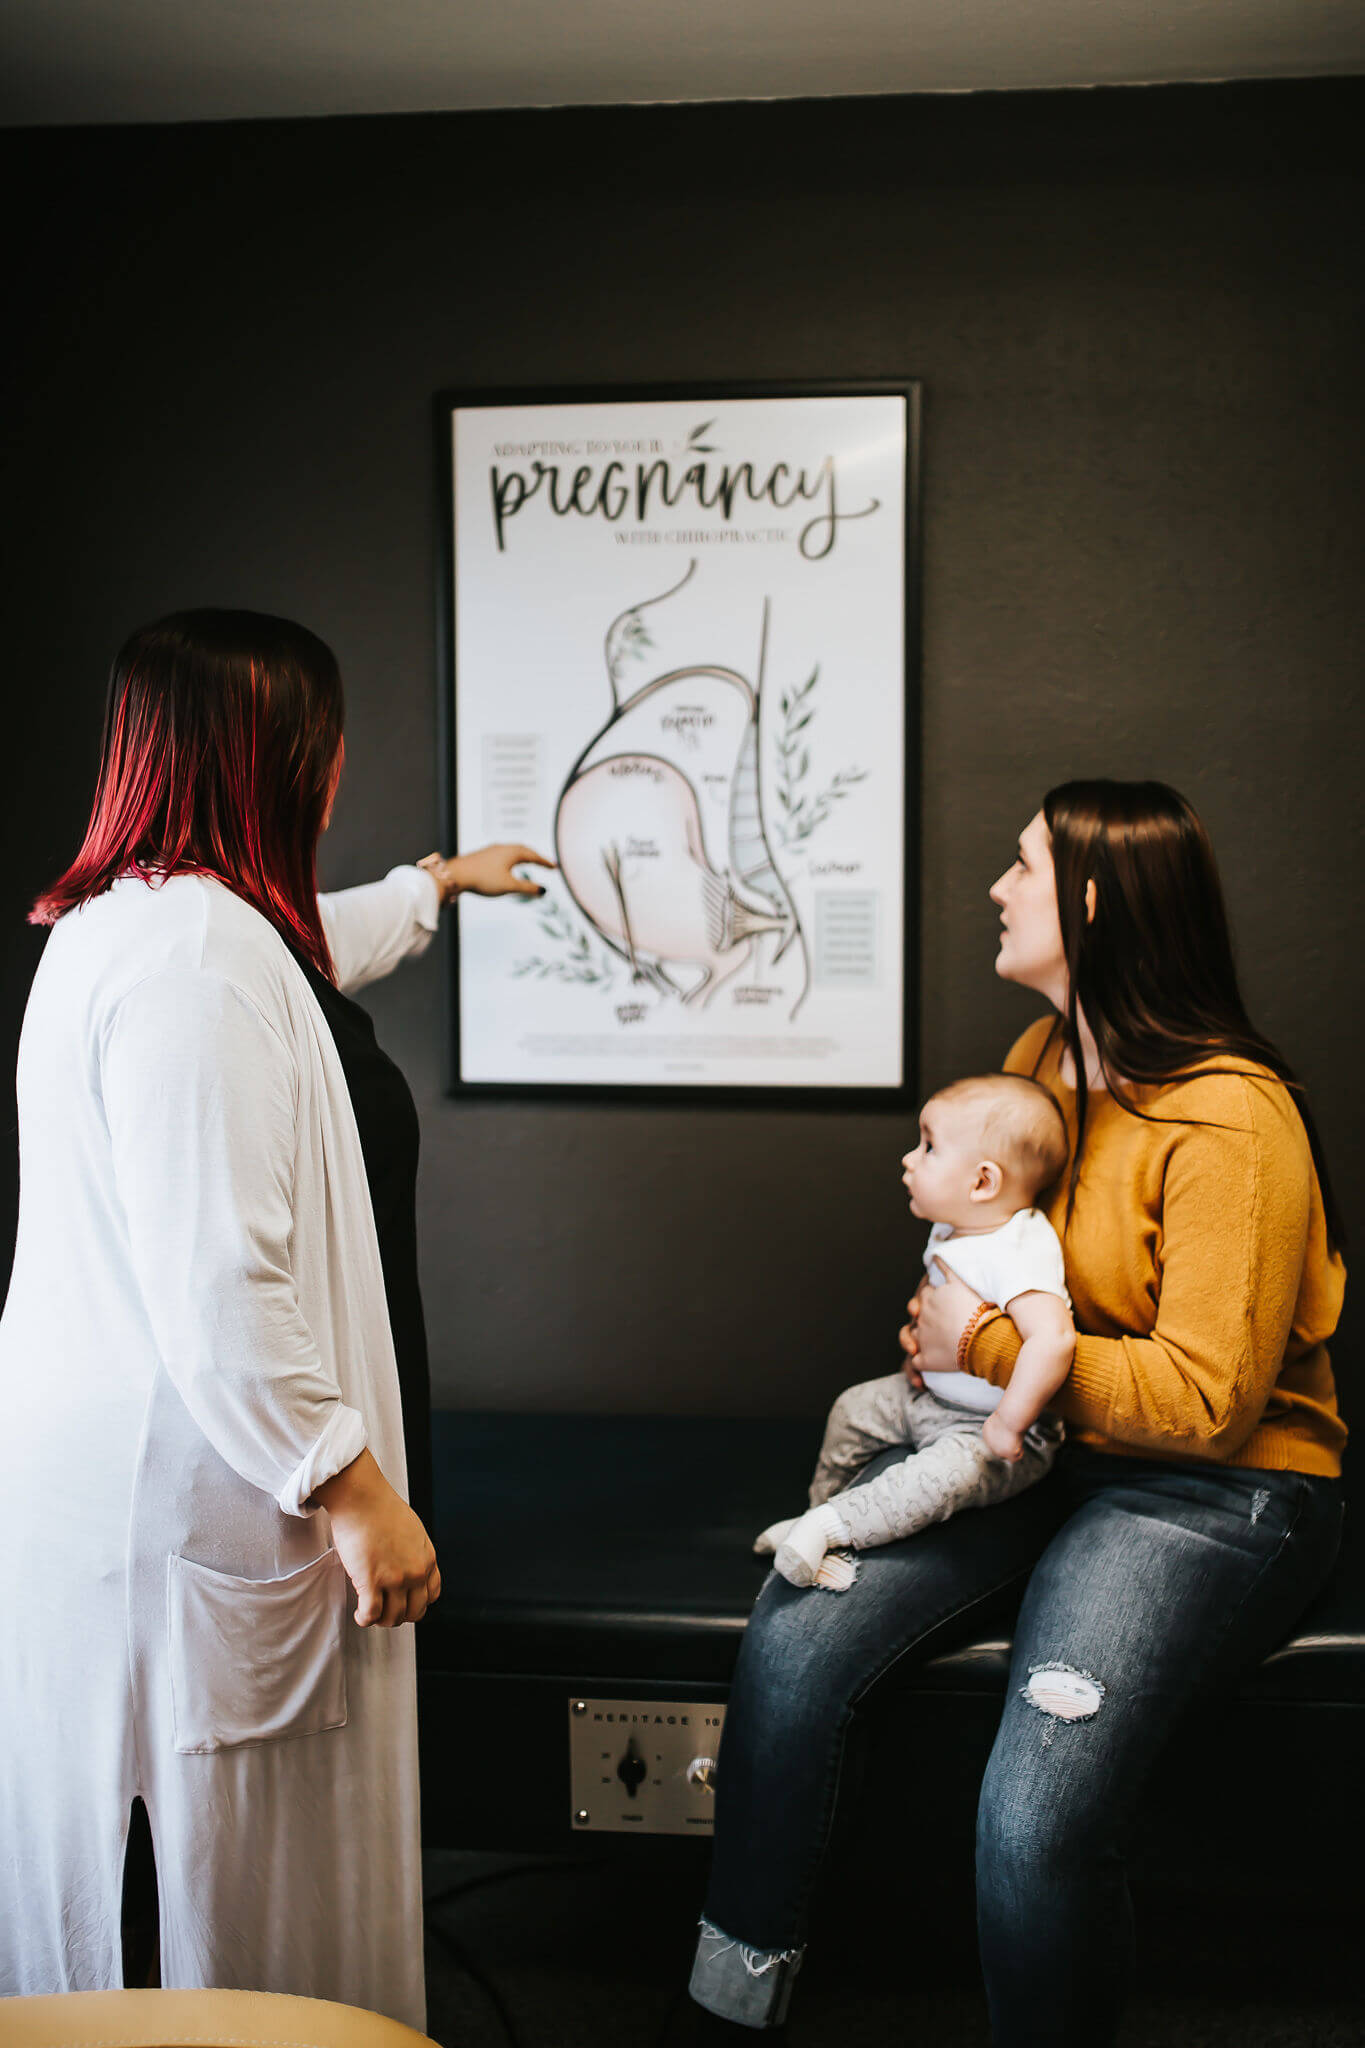 Spectum Chiropractic and Health Doctor, Brianna Wallace, pointing to a pregnancy diagram while a female patient holding her baby listens.